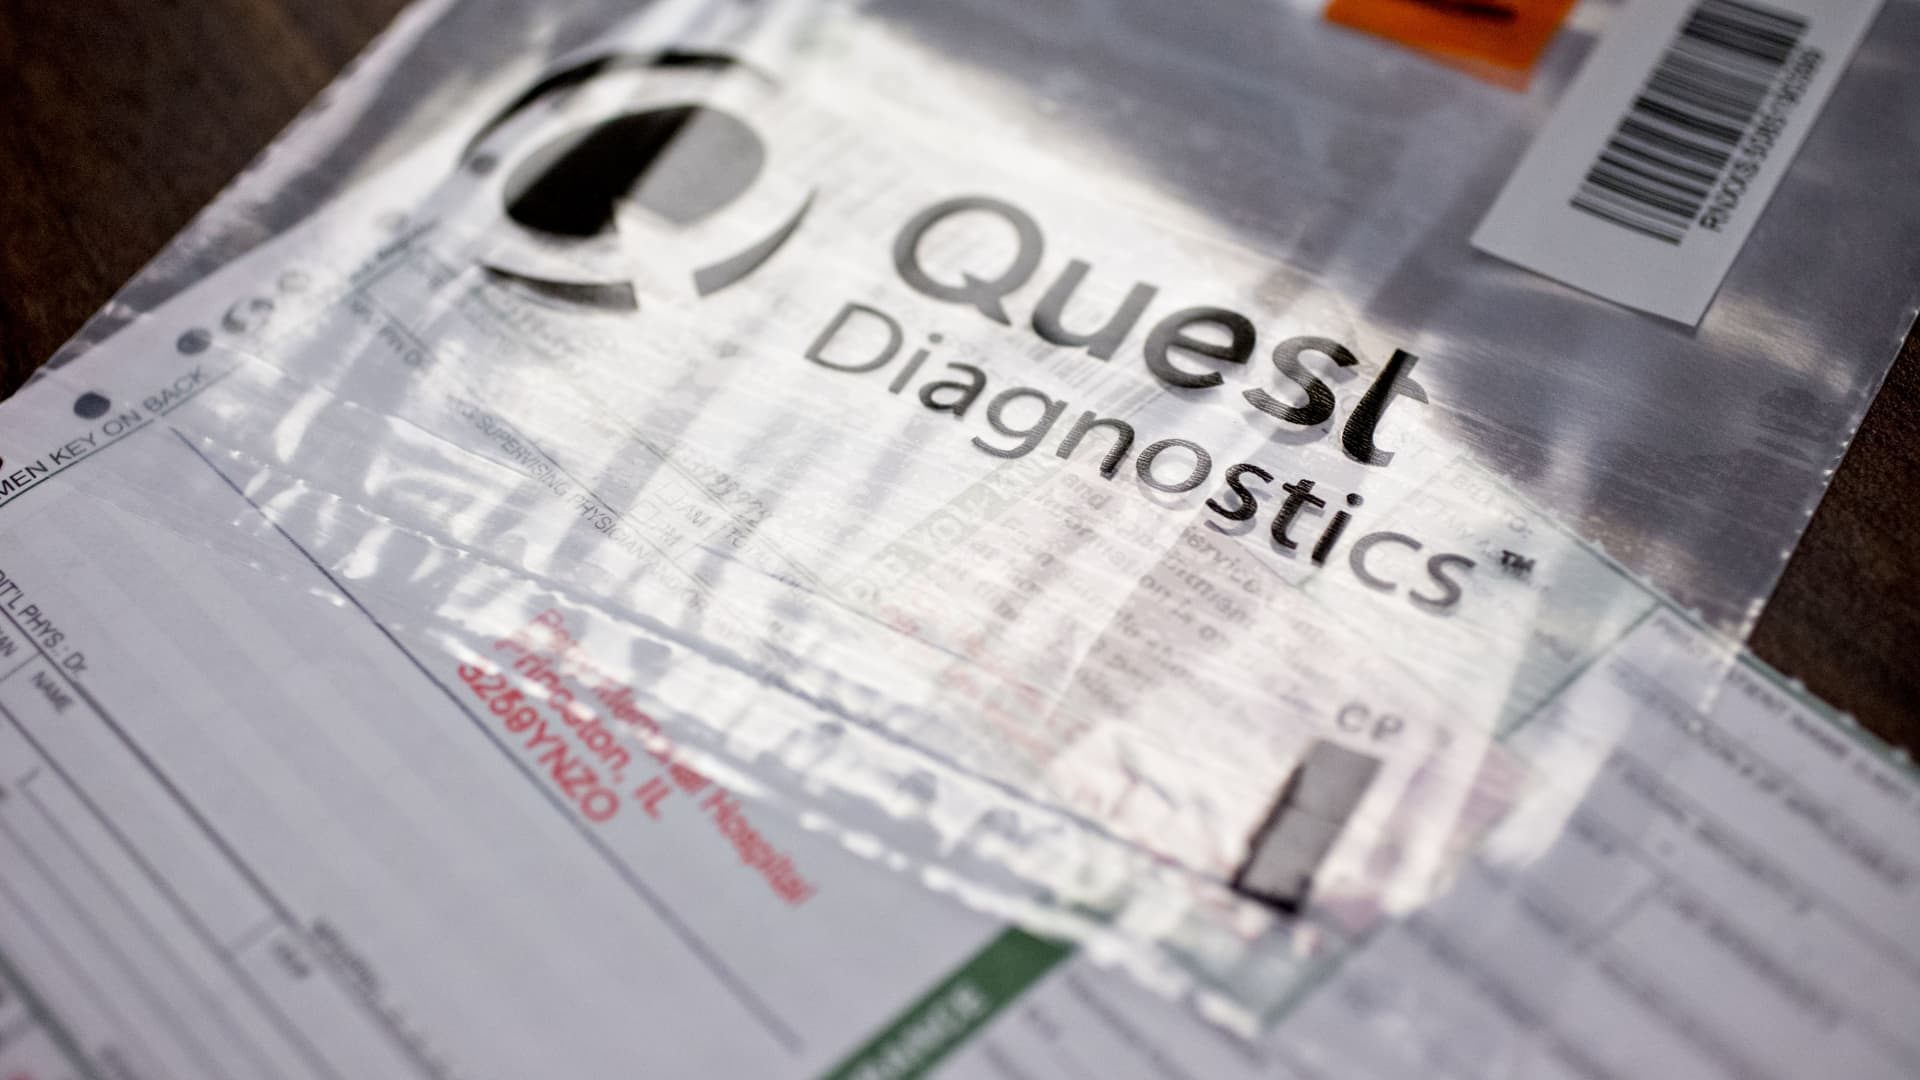 A Quest Diagnostics requisition form is displayed for a photograph at Perry Memorial Hospital in Princeton, Illinois, U.S..